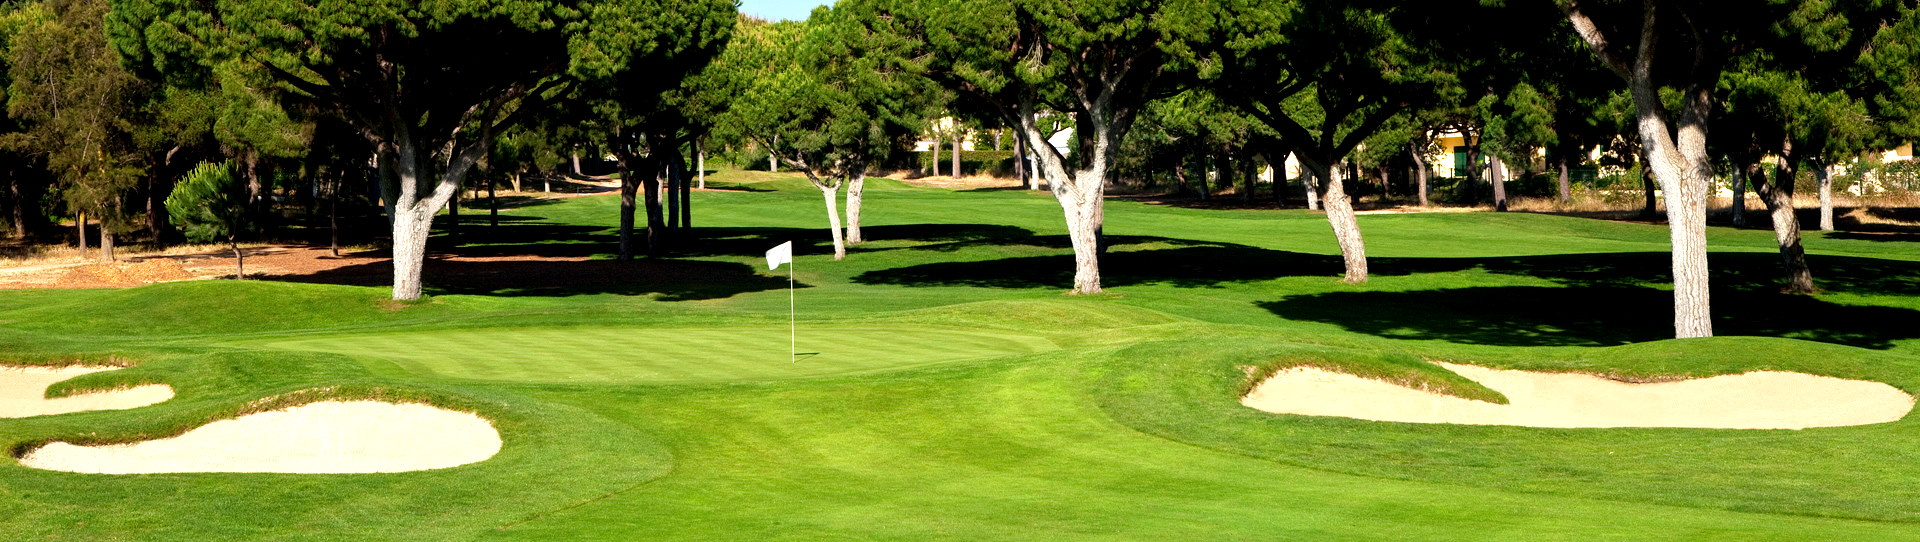 Vilamoura Tailor-made Classic Golf Package - Photo 3